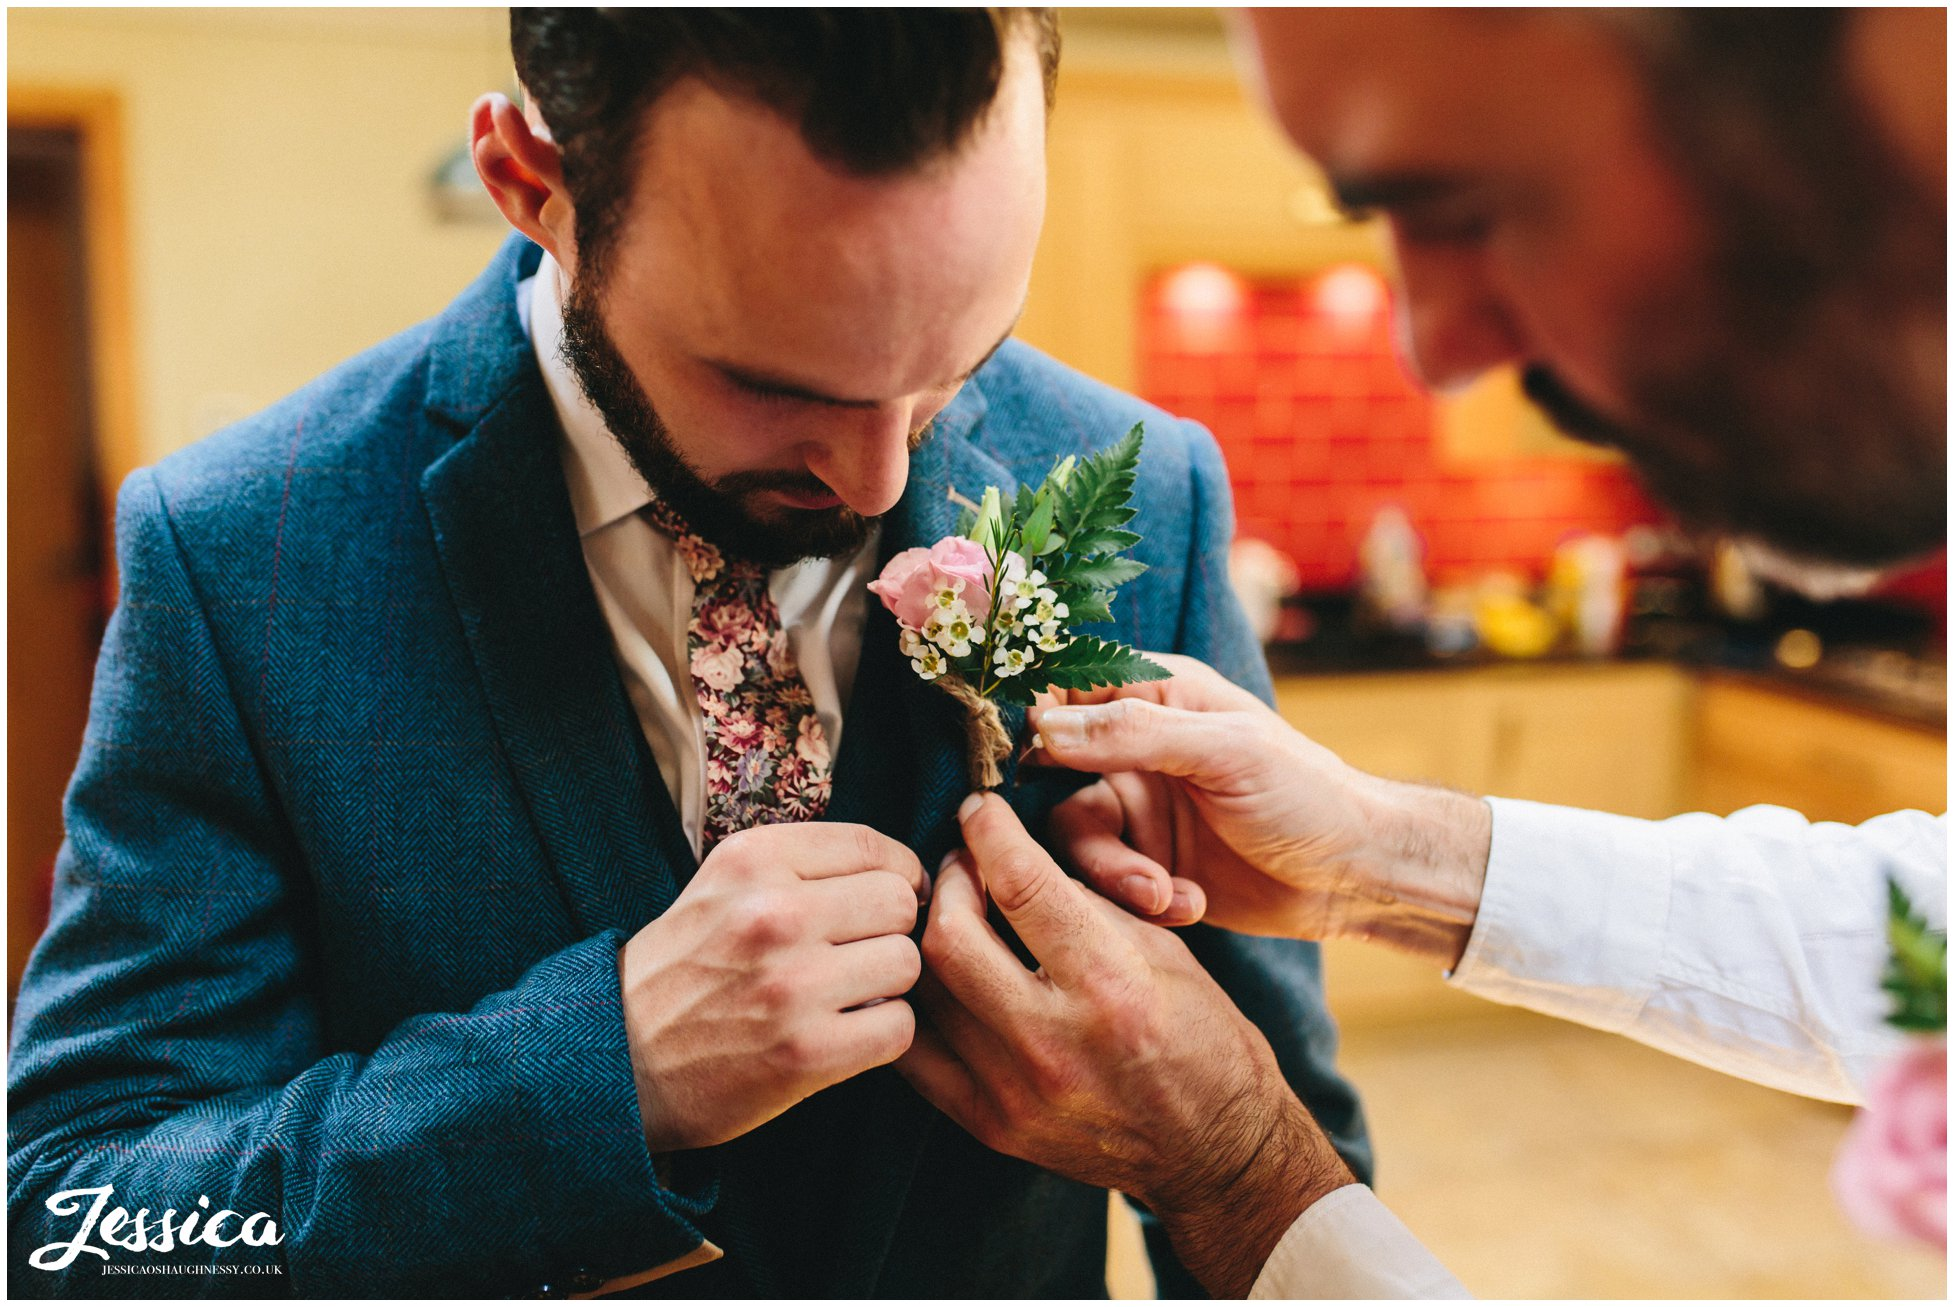 the groom's button hole is pinned on his jacket